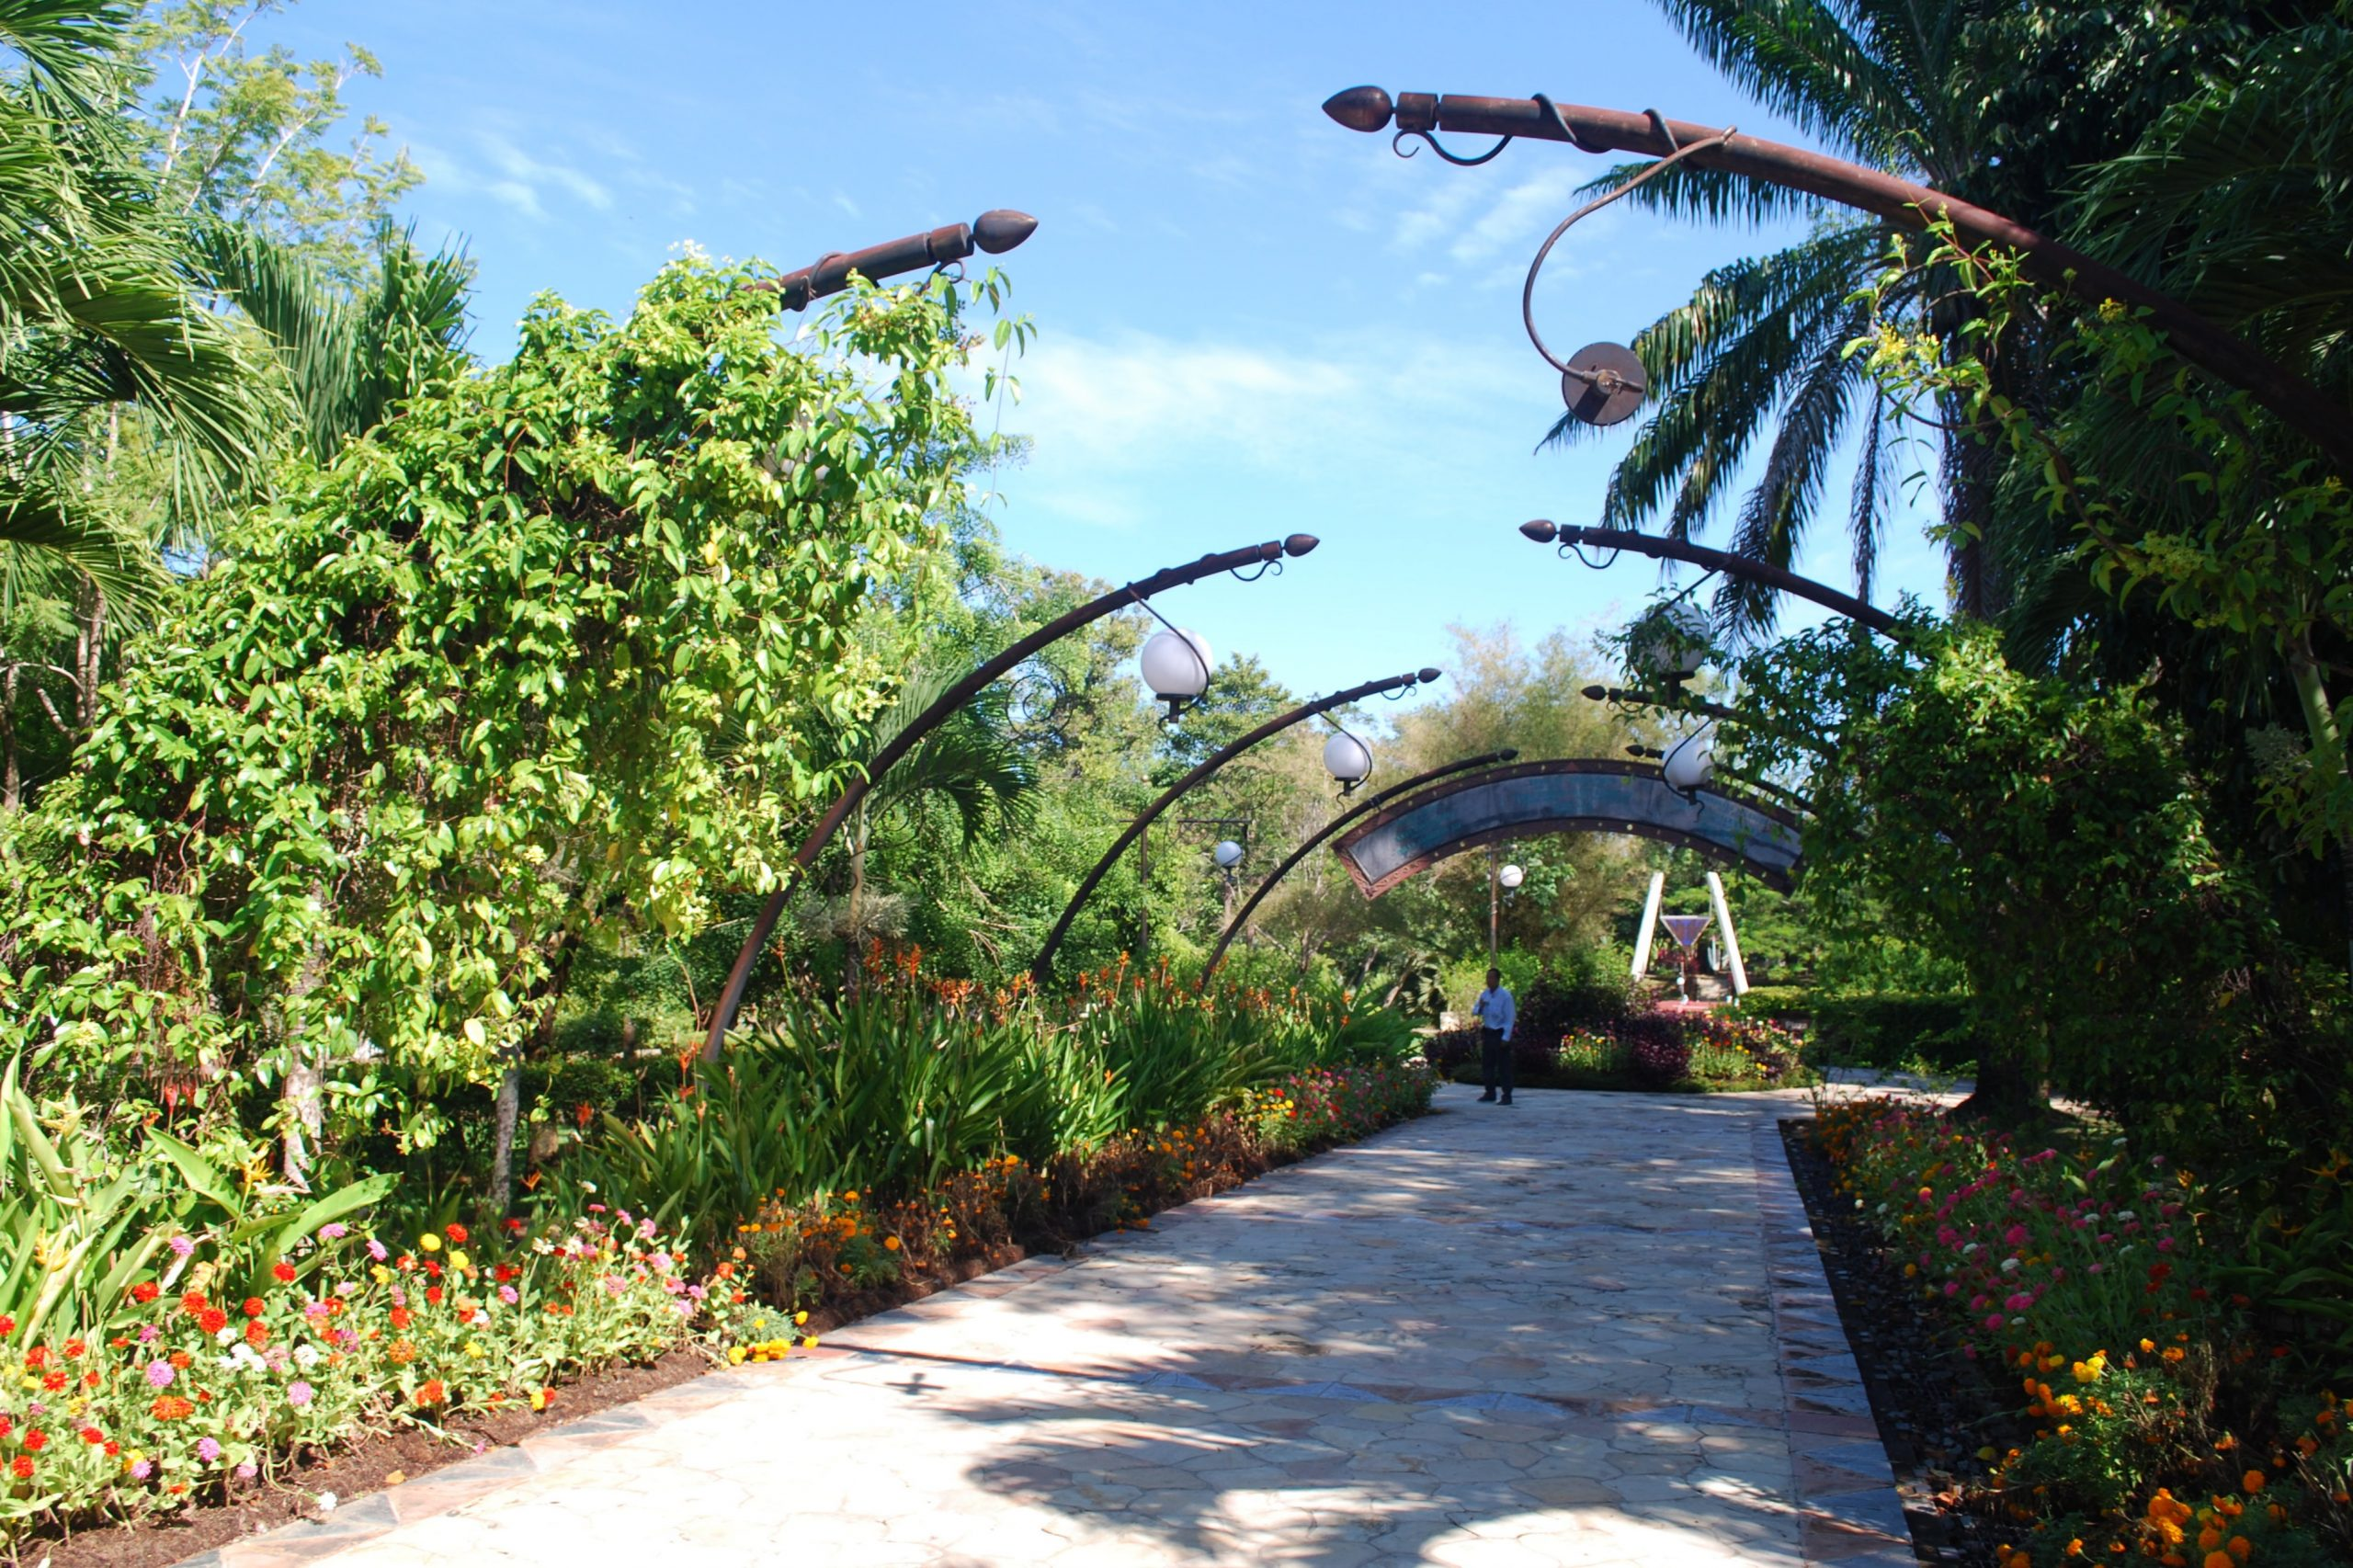 Find solace at the Botanical Gardens. - Things to Do in Labuan